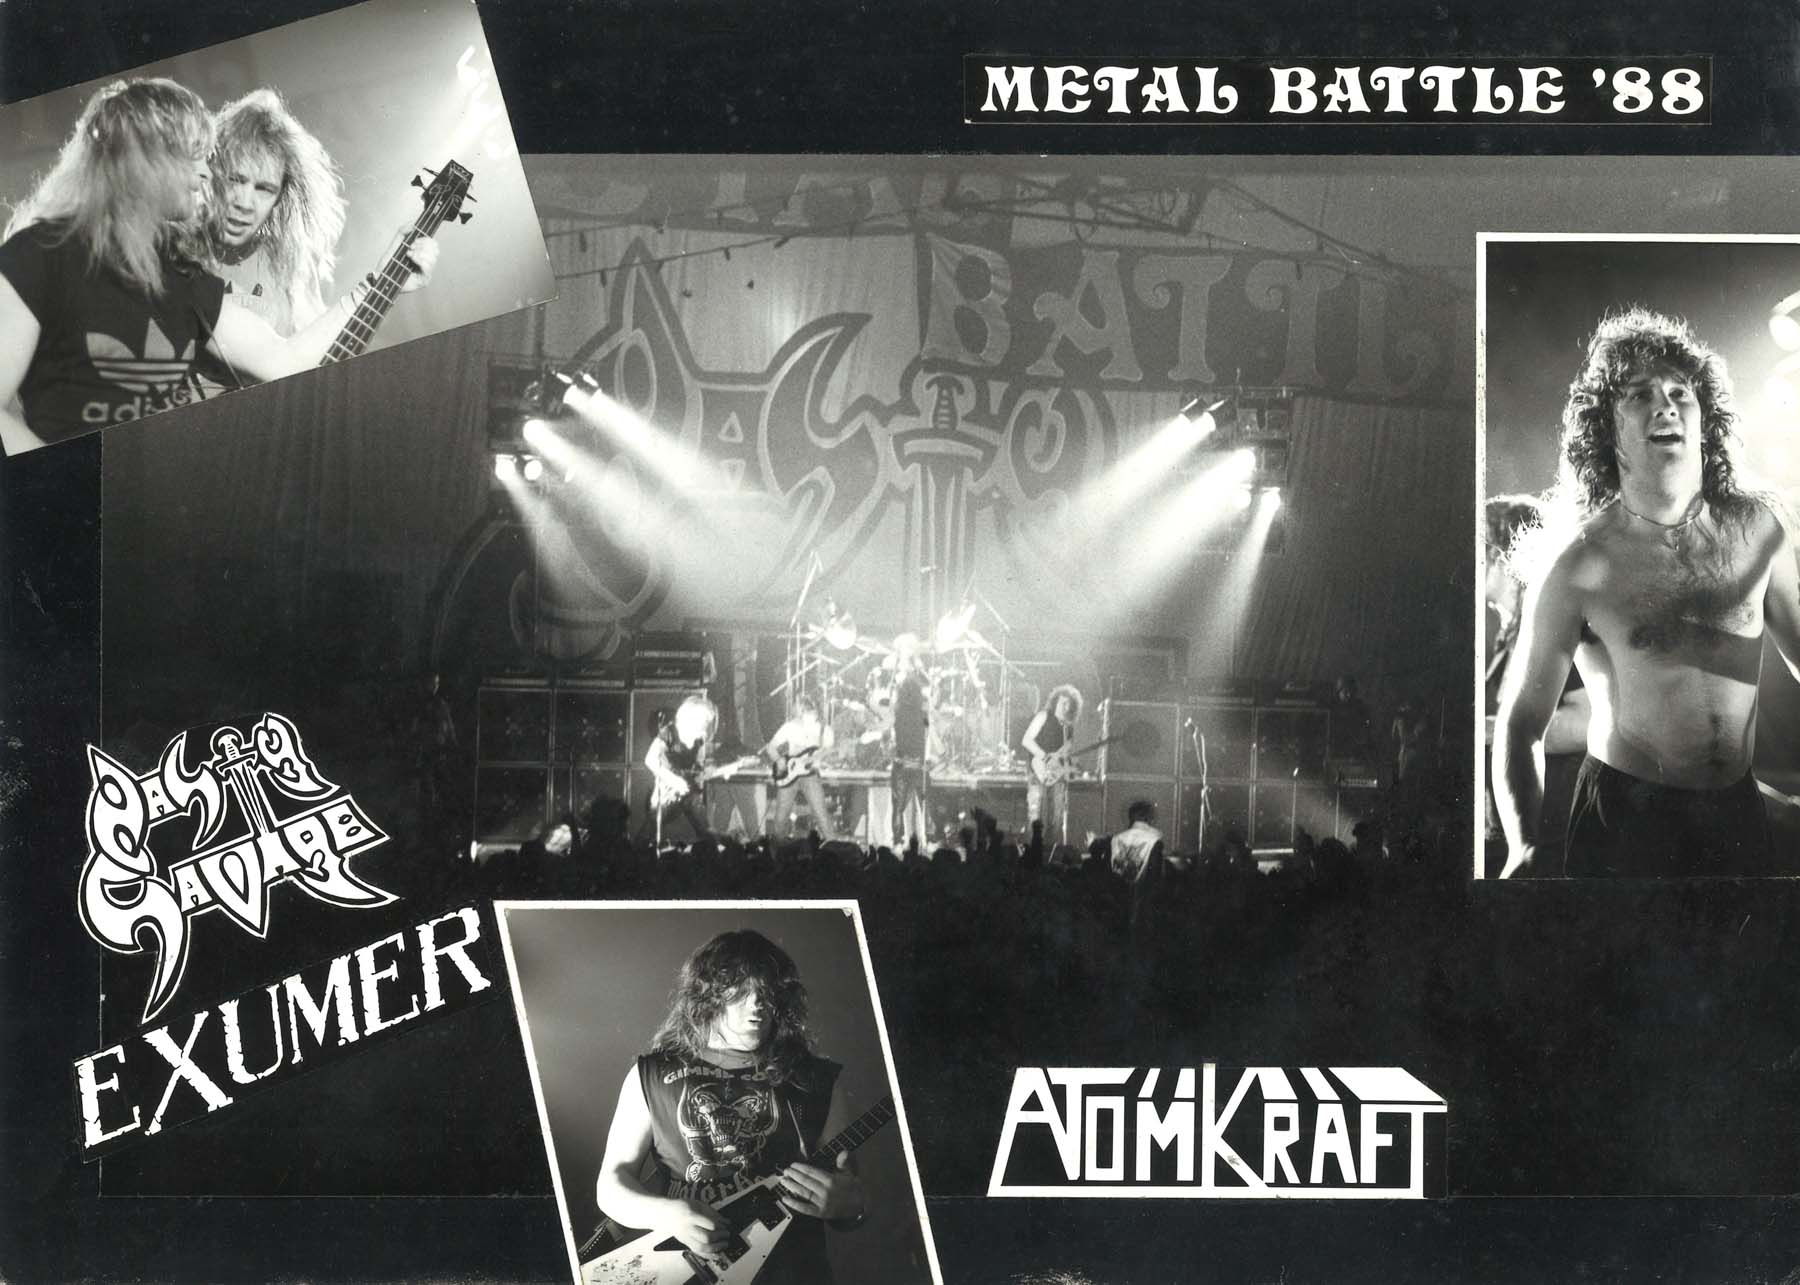 a collage of photos of heavy metal bands on stage